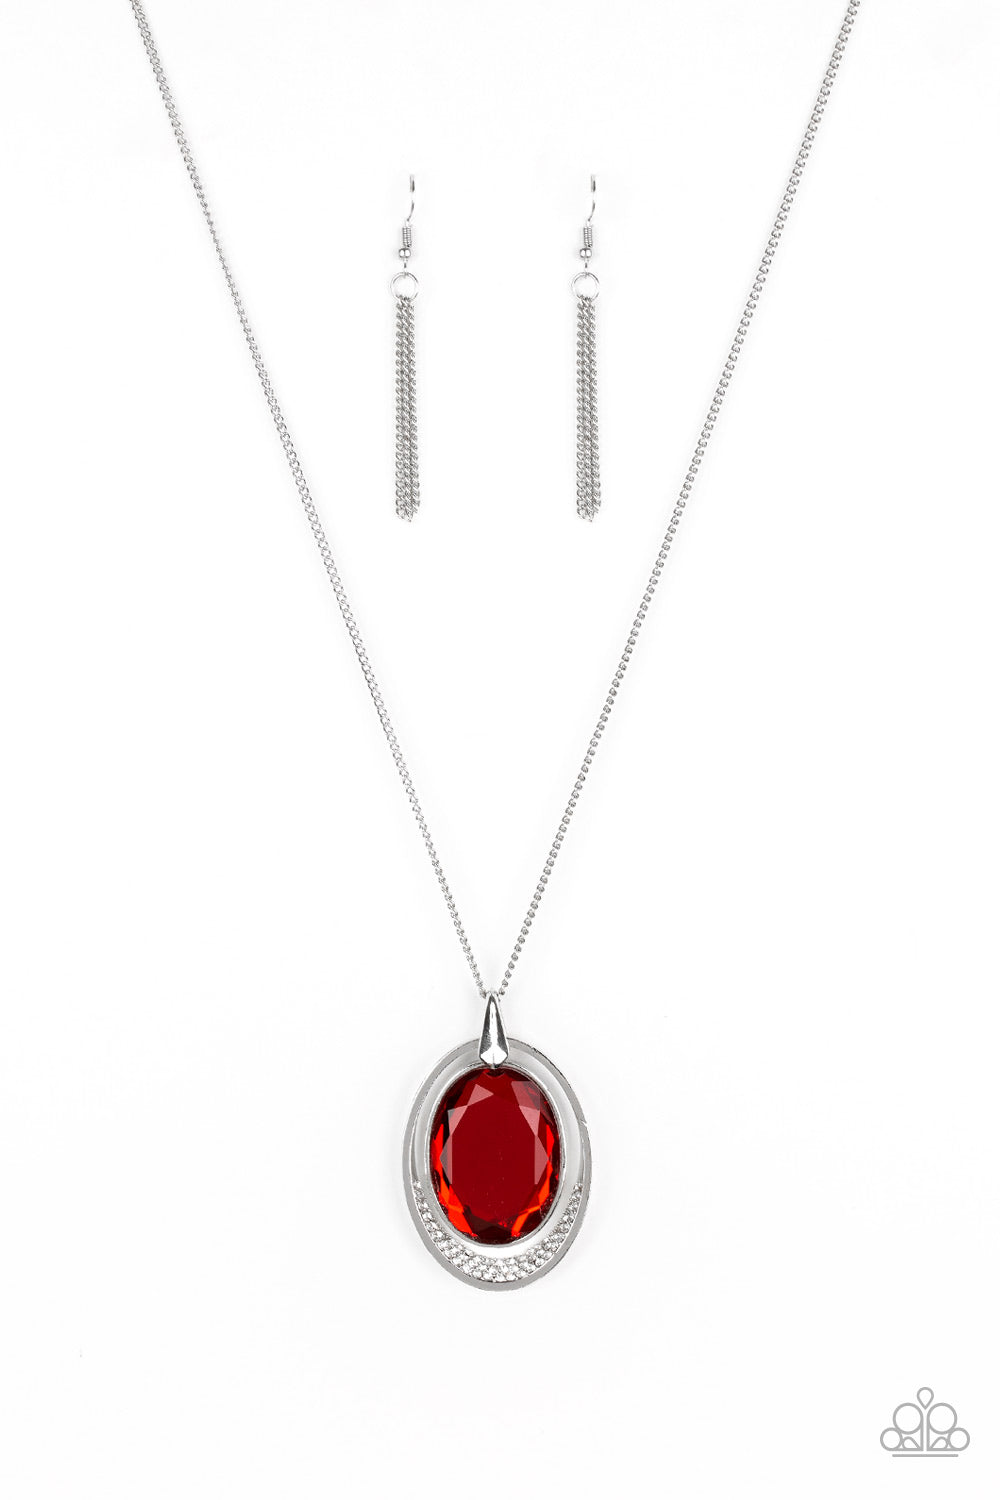 Paparazzi Accessories - Metro Must-Have - Red Necklace Set - JMJ Jewelry Collection